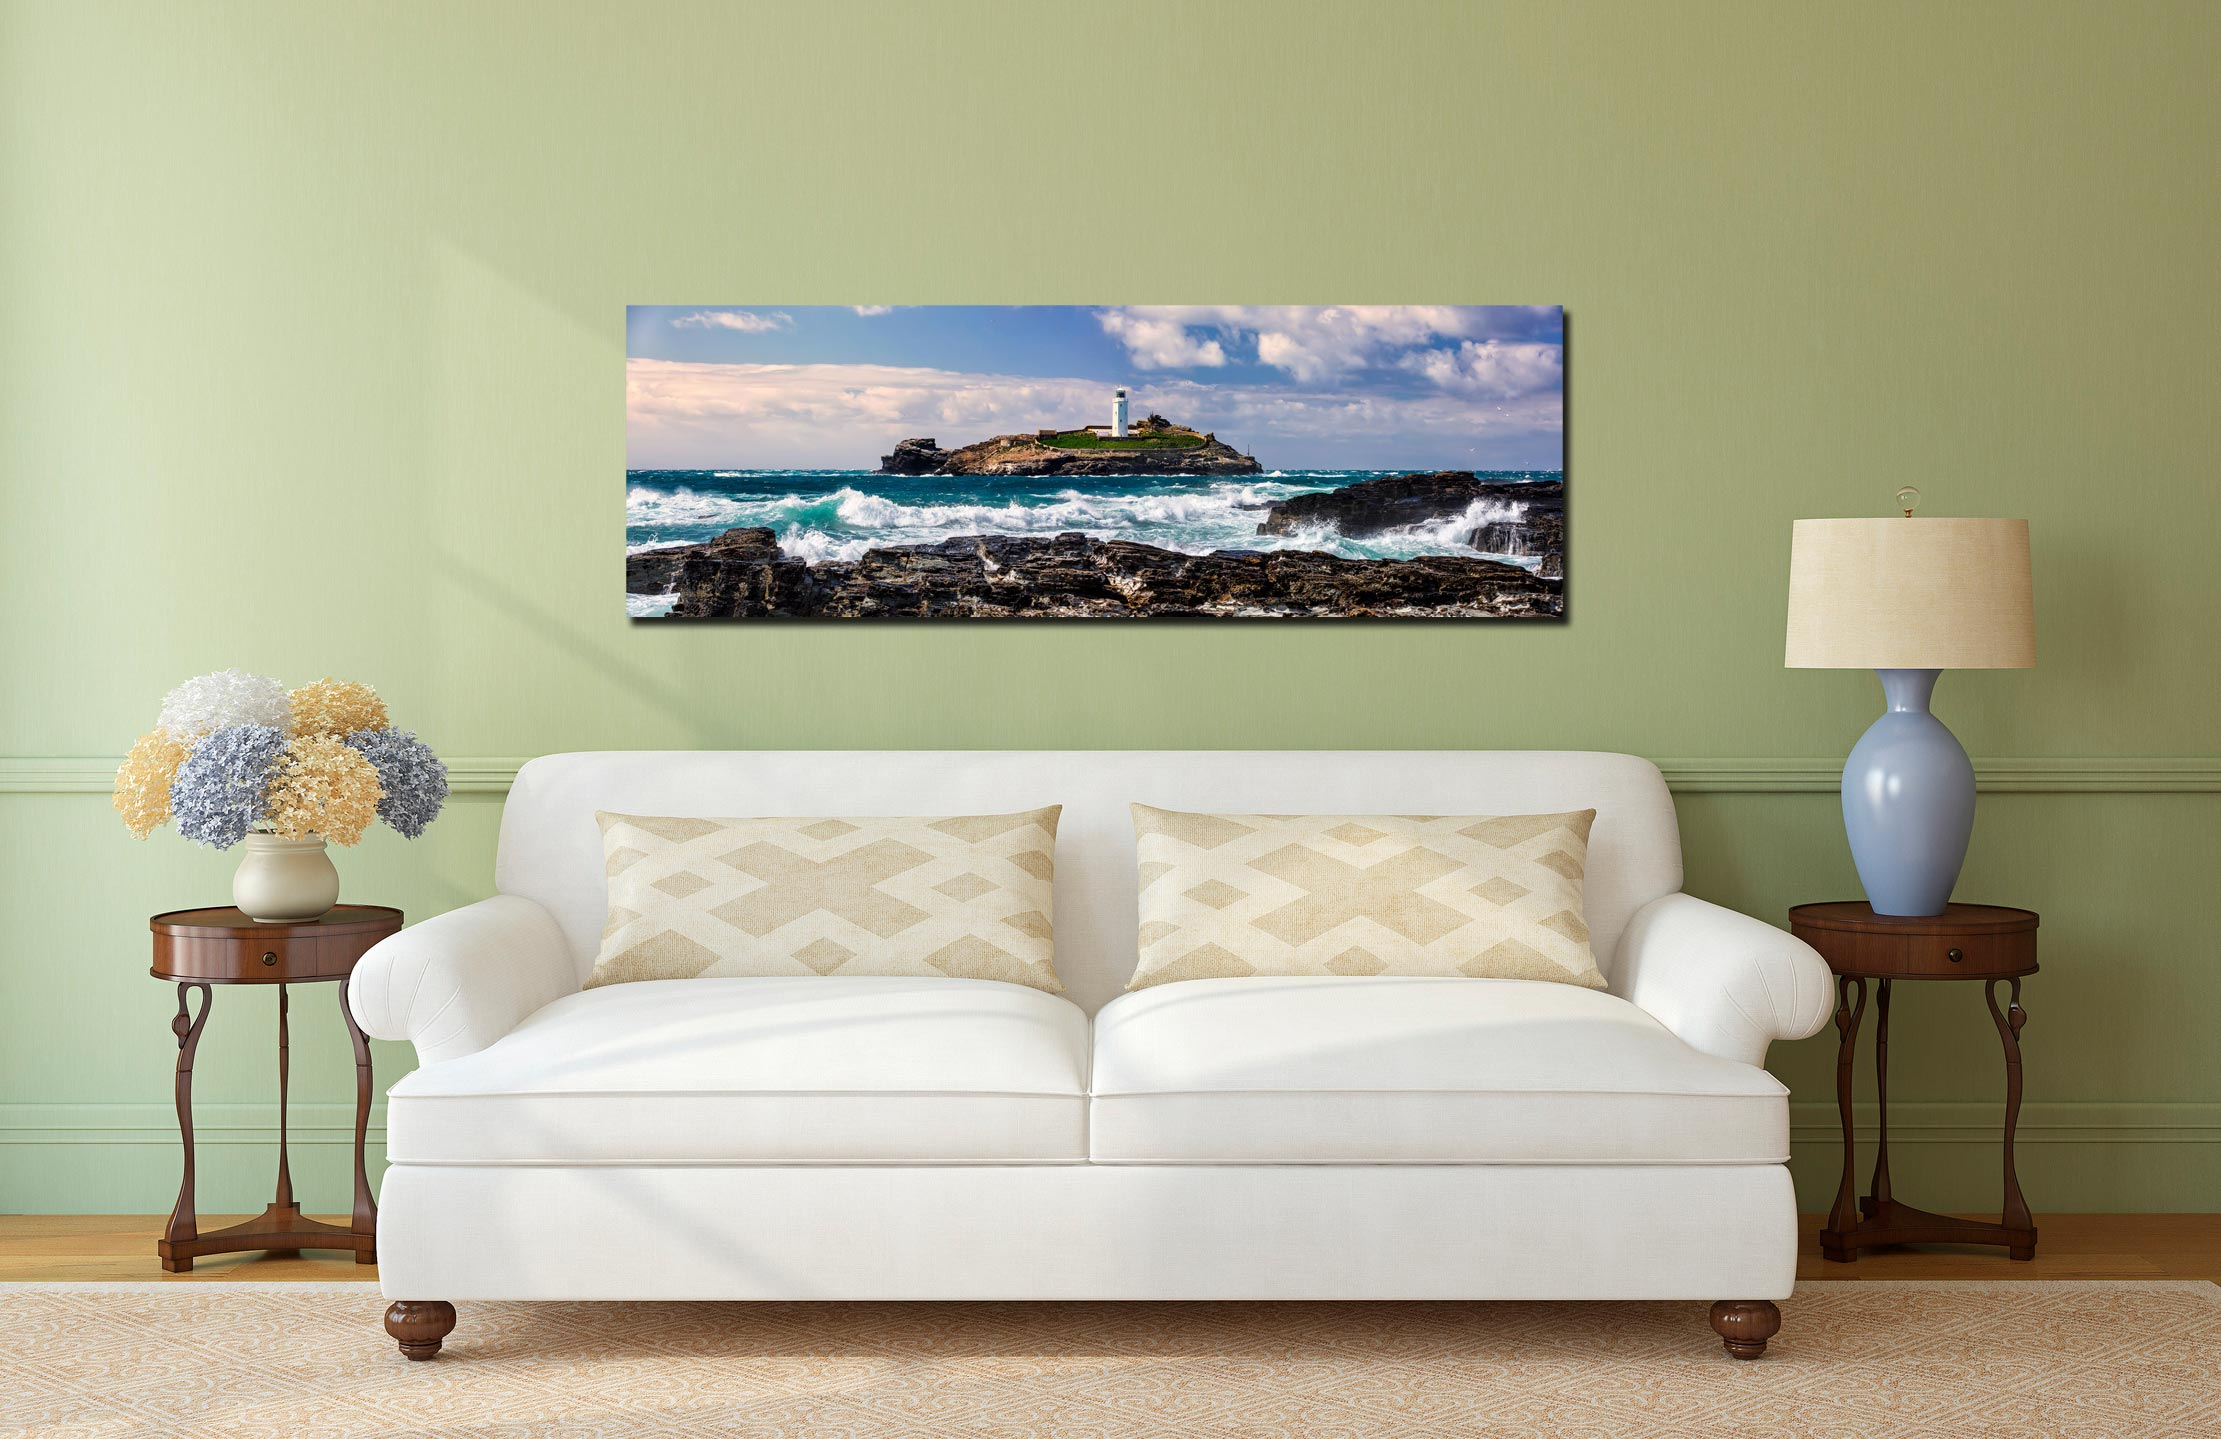 Godrevy Lighthouse and the rocks of Godrevy Point on a breezy spring afternoon - Print Aluminium Backing With Acrylic Glazing on Wall